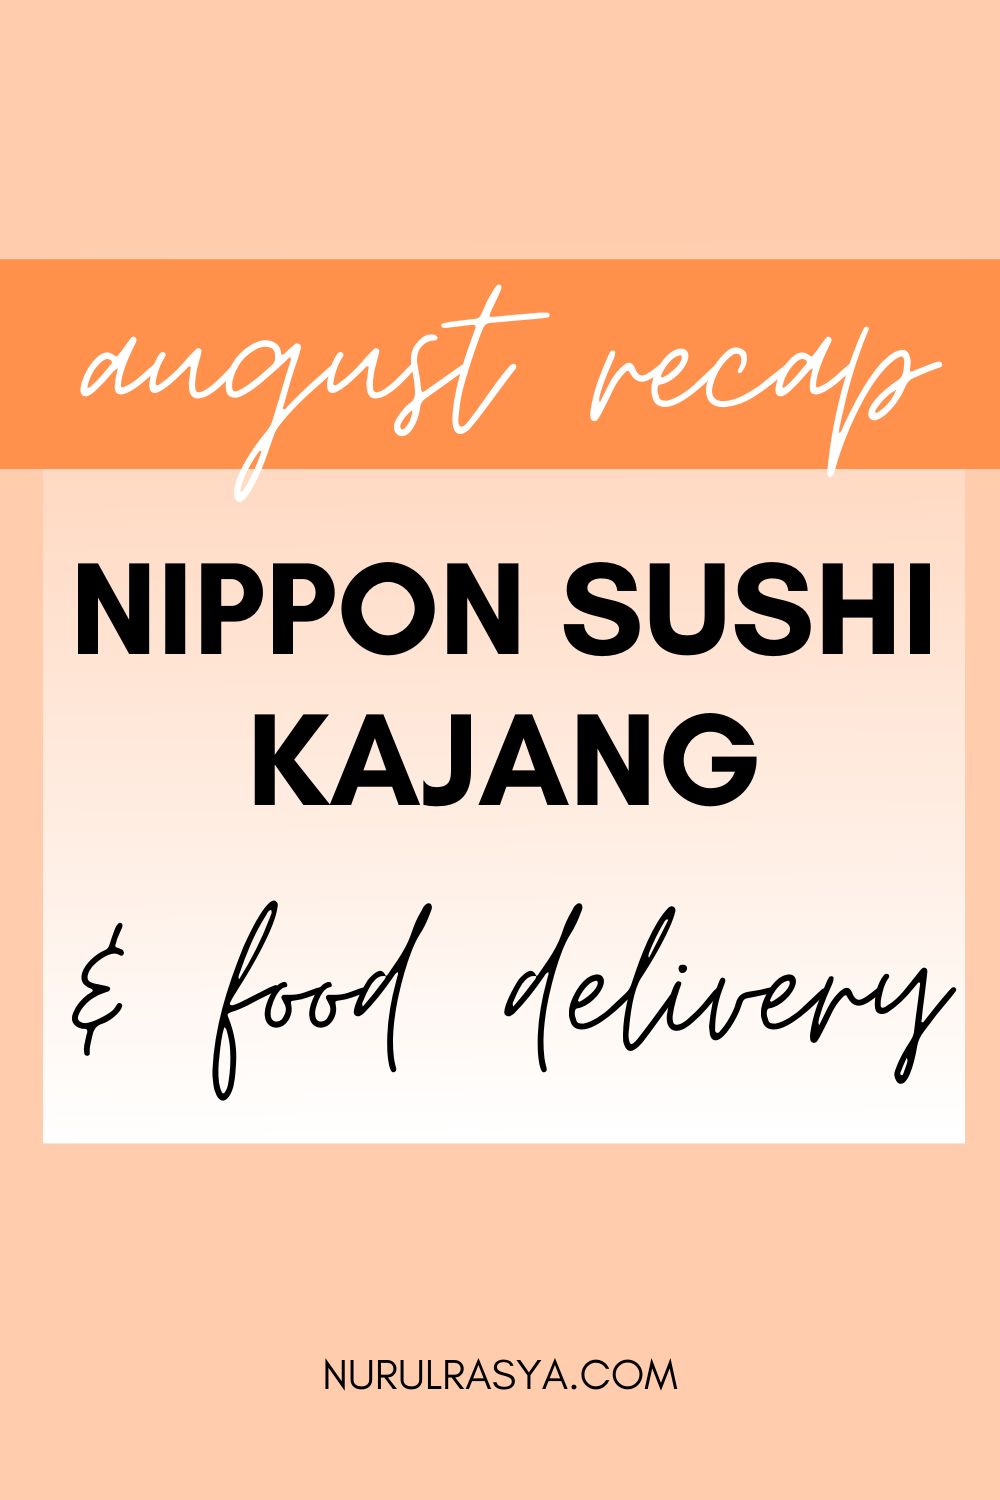 august-recap-nippon-sushi-kajang-foodpanda-and-grabfood-delivery